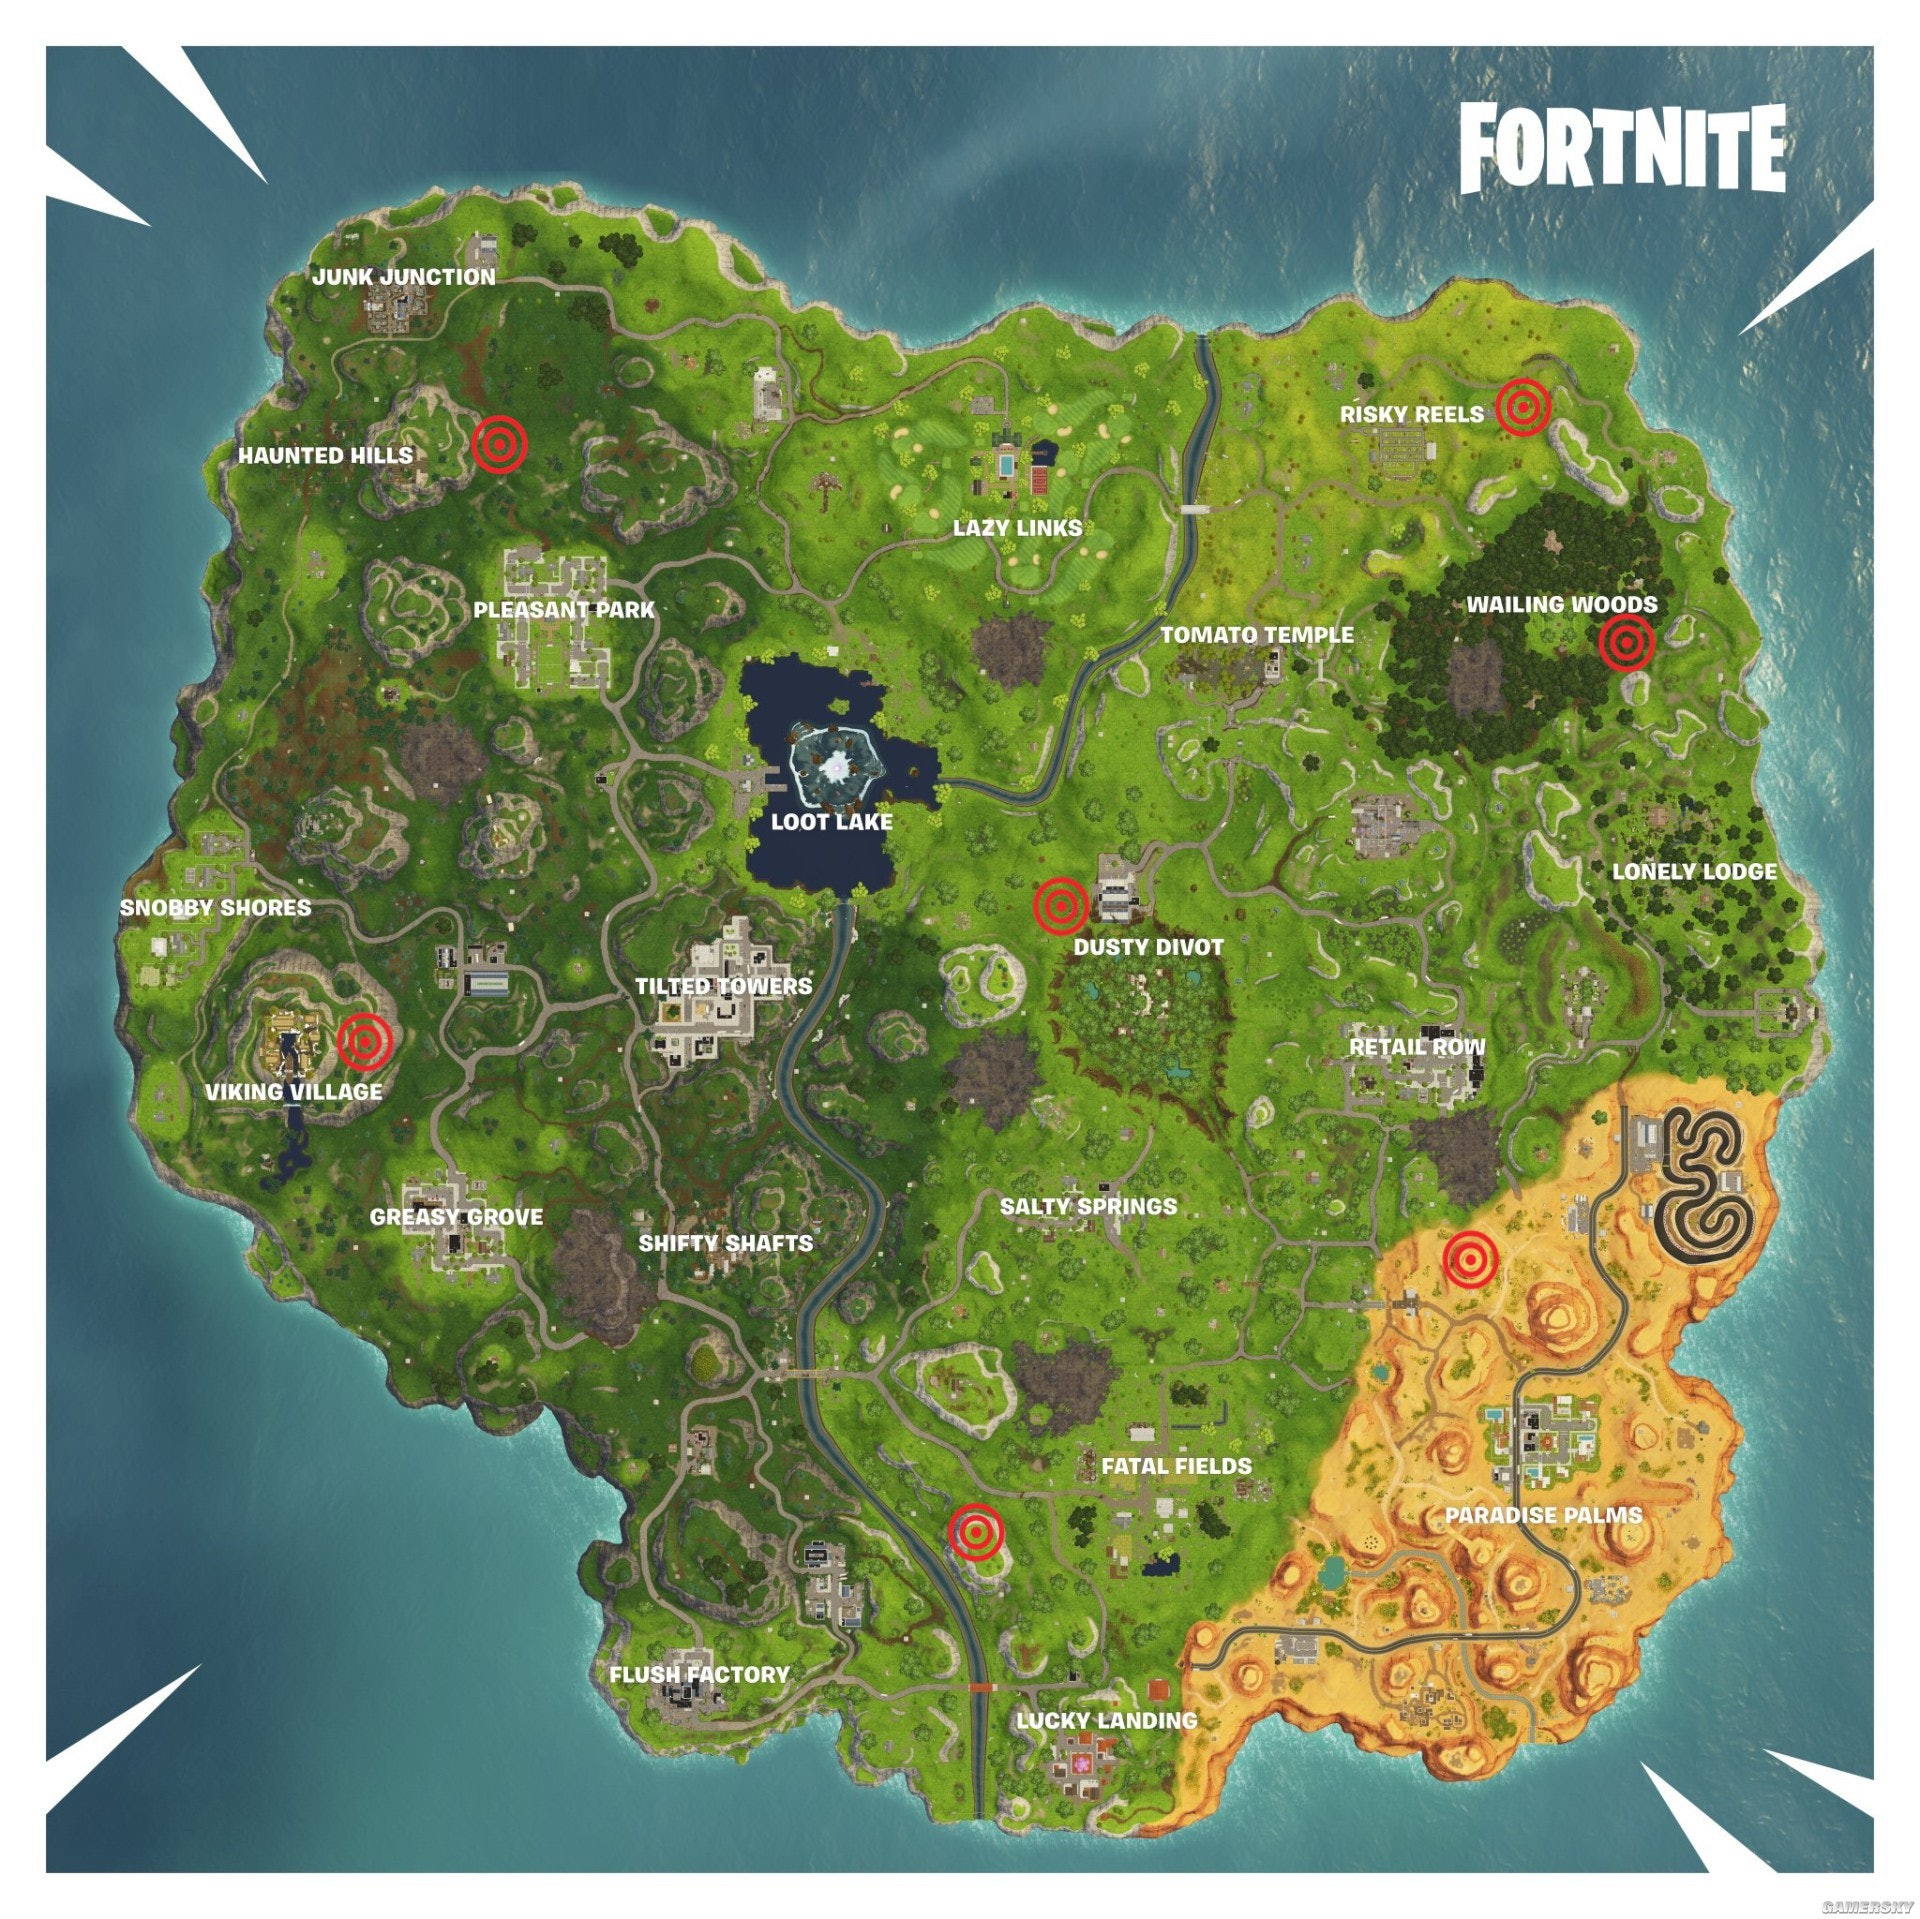 'Fortnite' Shooting Ranges